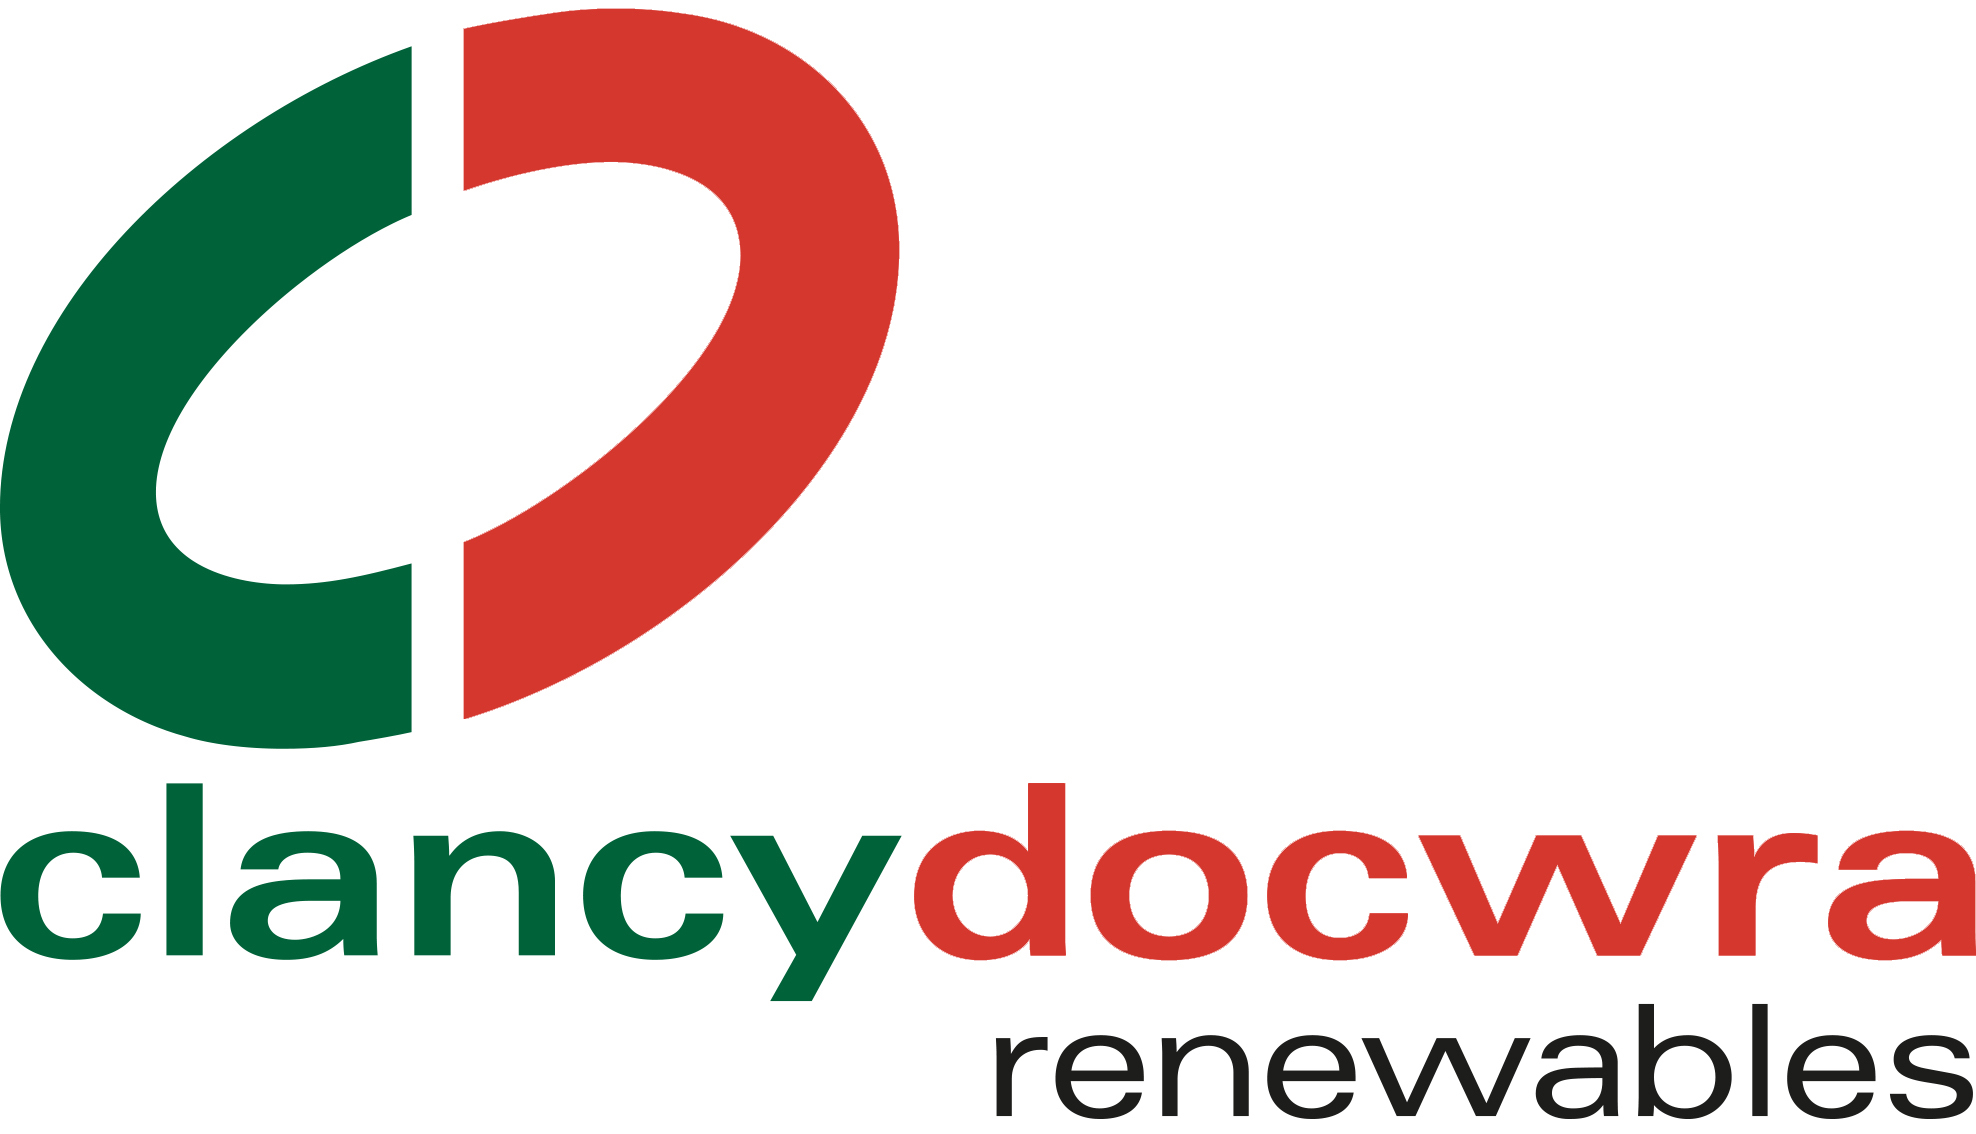 Renewables - Clancy Docwra